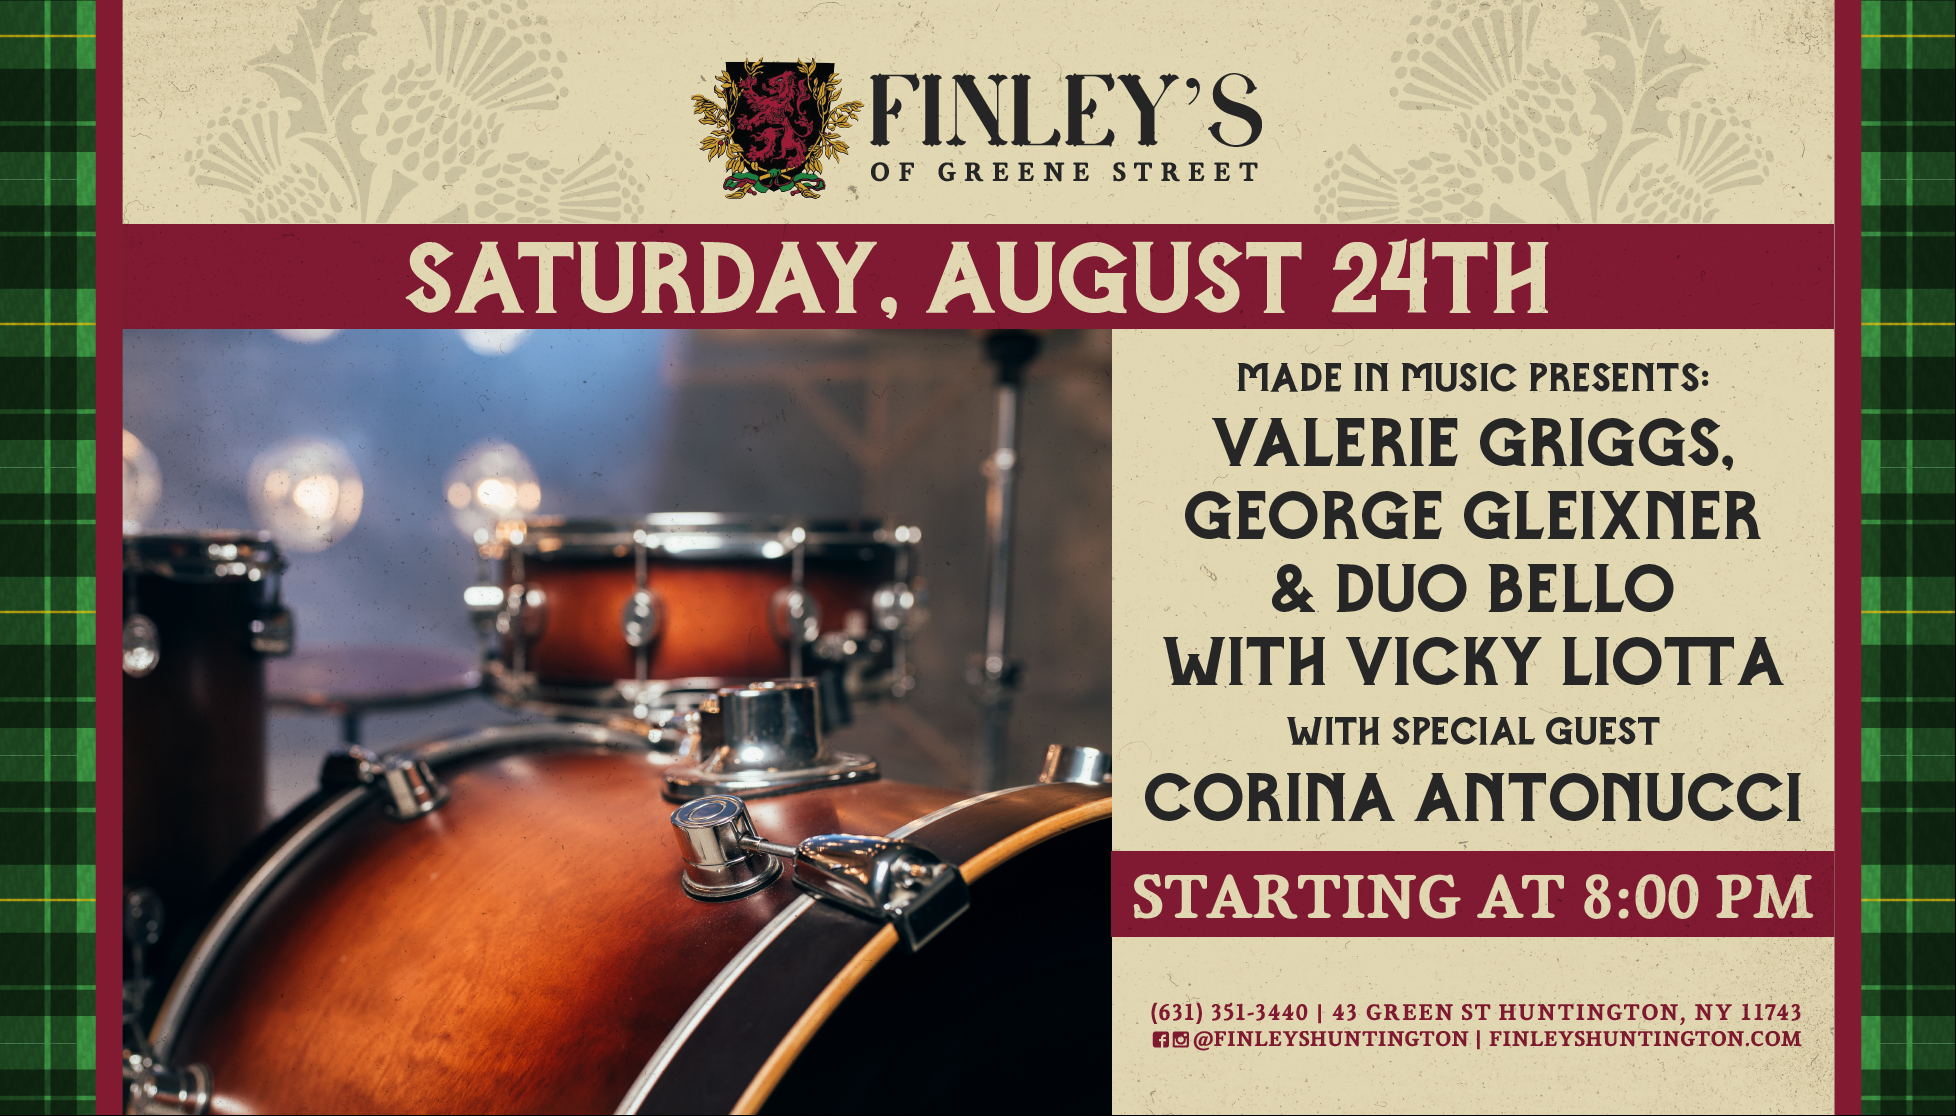 Flyer for Made In Music will present: Valerie Griggs, George Gleixner & Duo Bello with Vicky Liotta with special guest Corina Antonucci! Music starts at 8pm on August 24th.